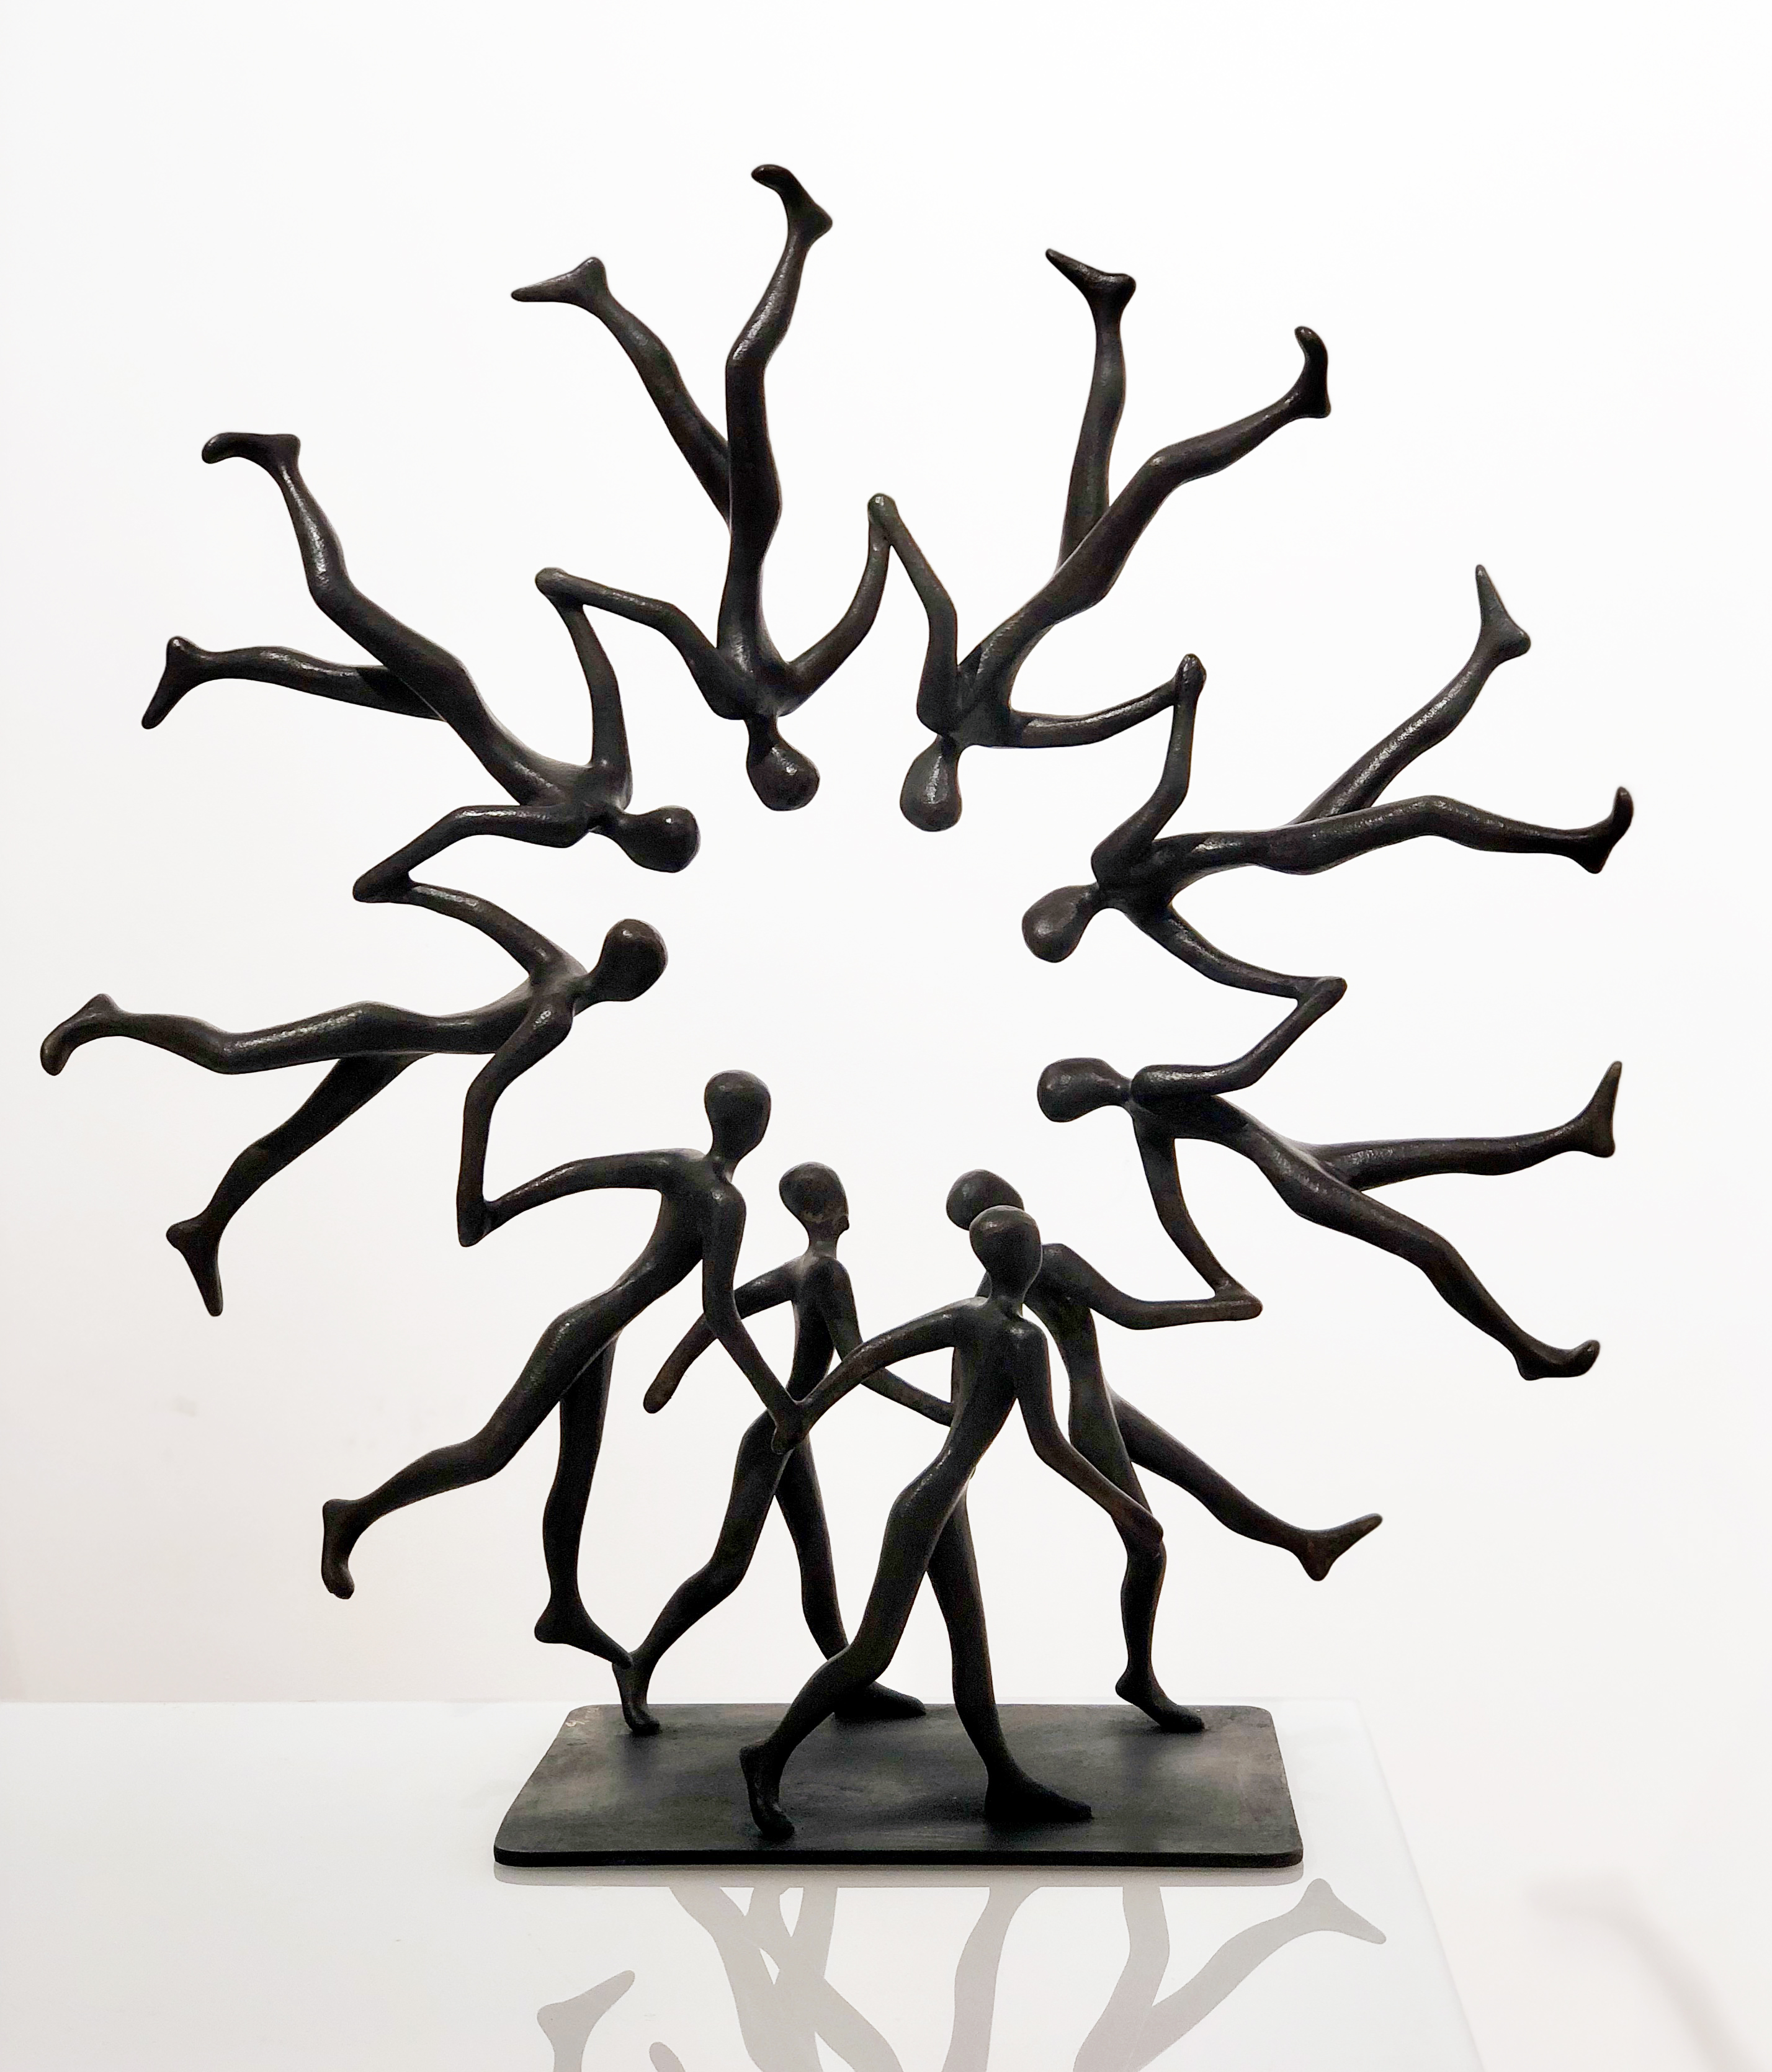 CIRCLE OF LIFE Bronze 60x60x22cm / 23,6x23,6x8,6 inches